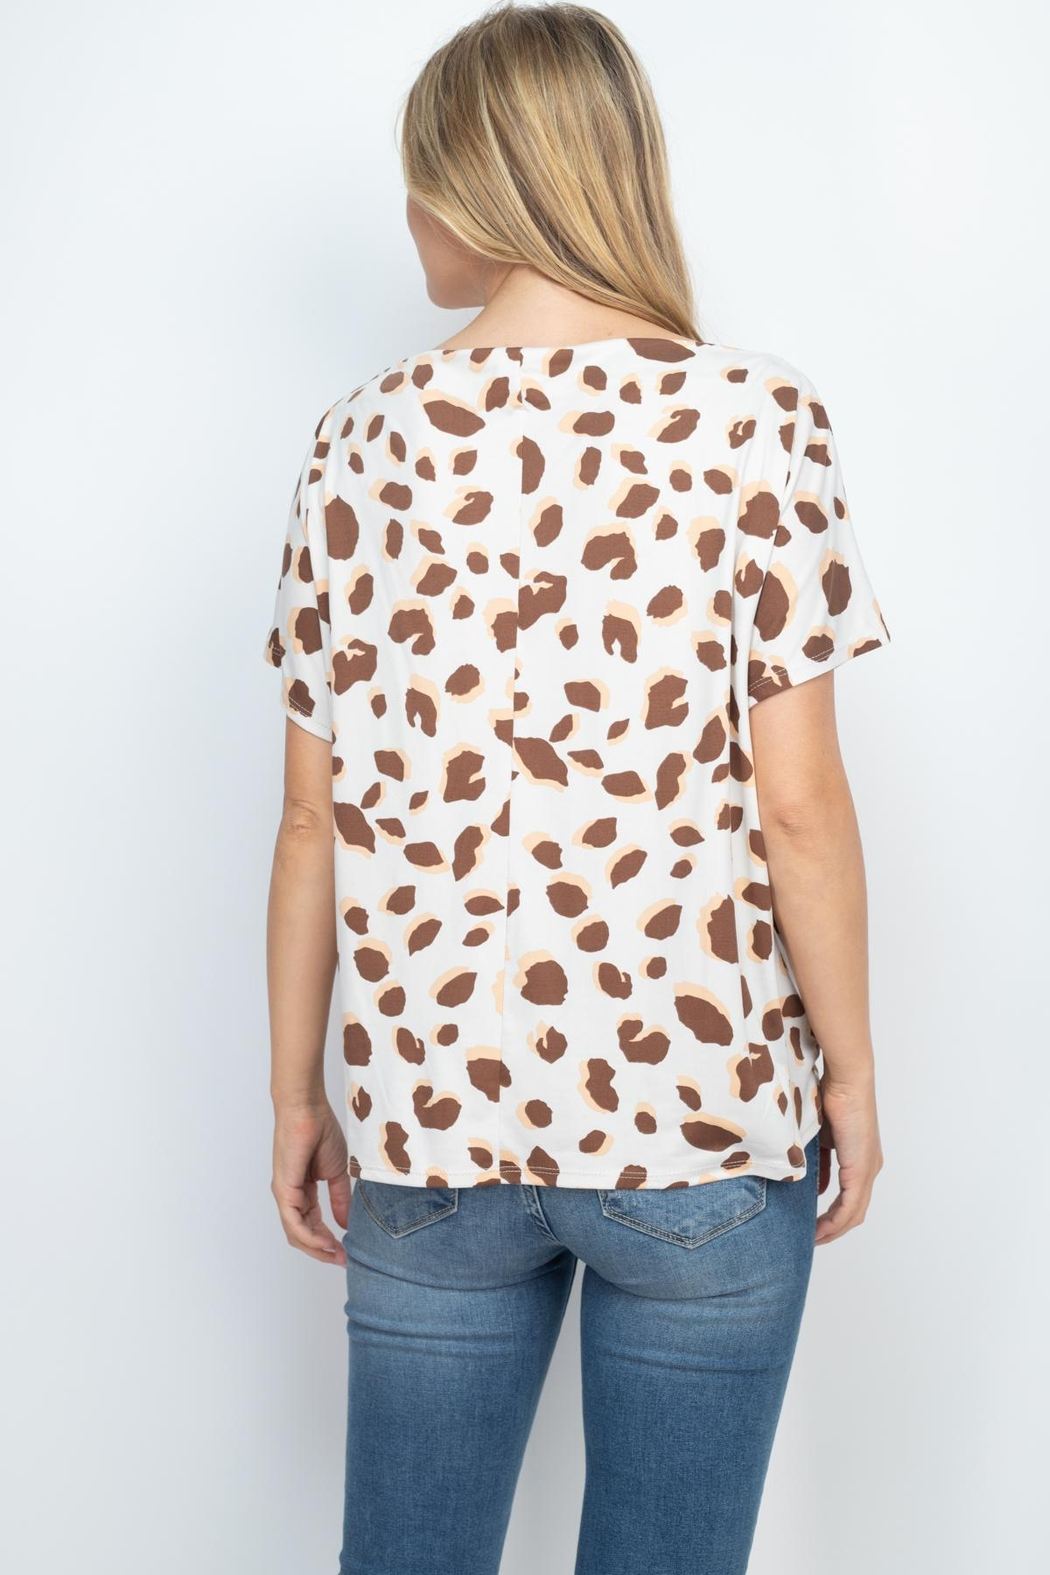 Riah Fashion Boat-Neckline-Twist-Front-Leopard-Top - Front Full Image